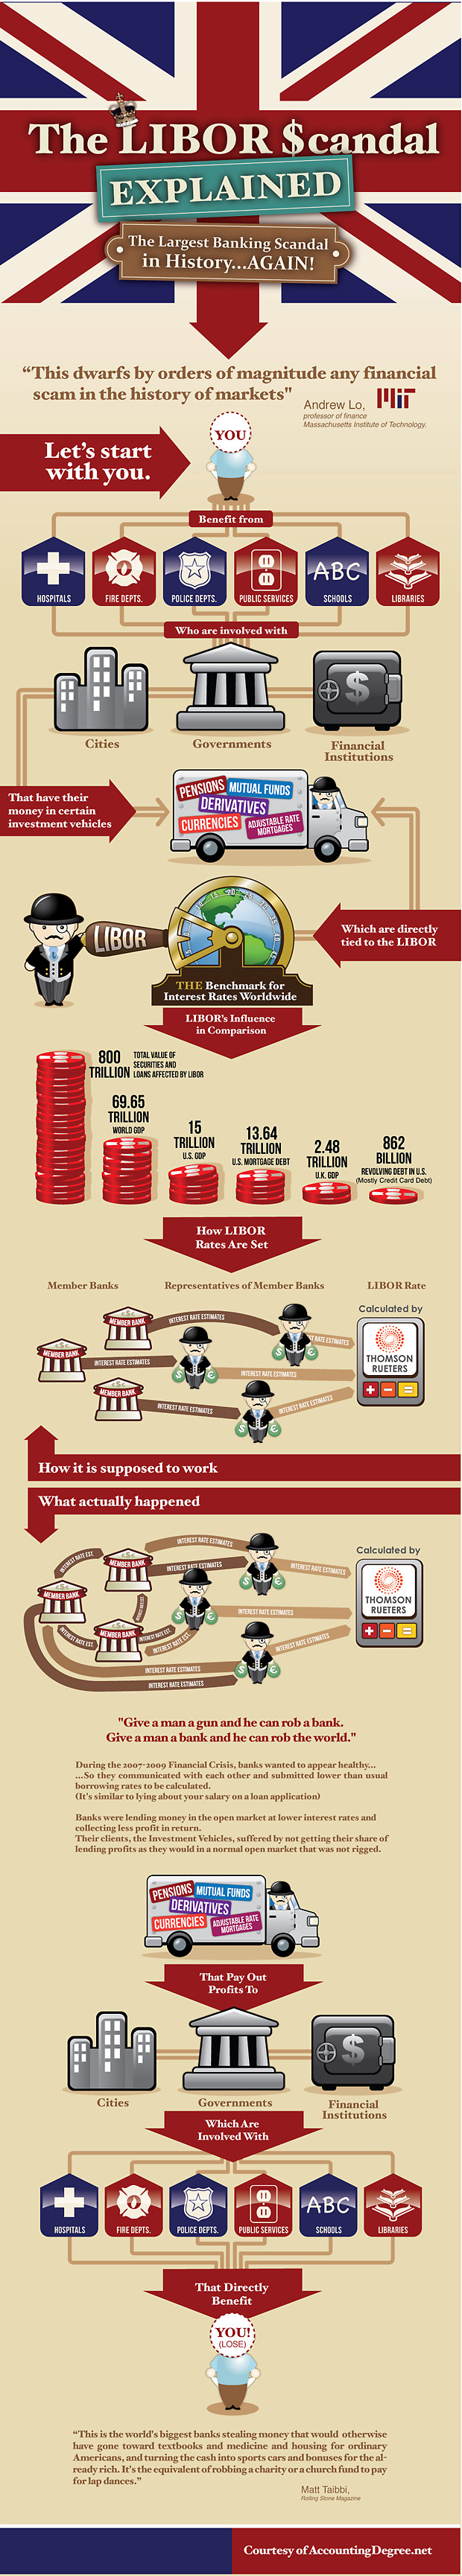 The-Libor-Scandal-Explained-infographic